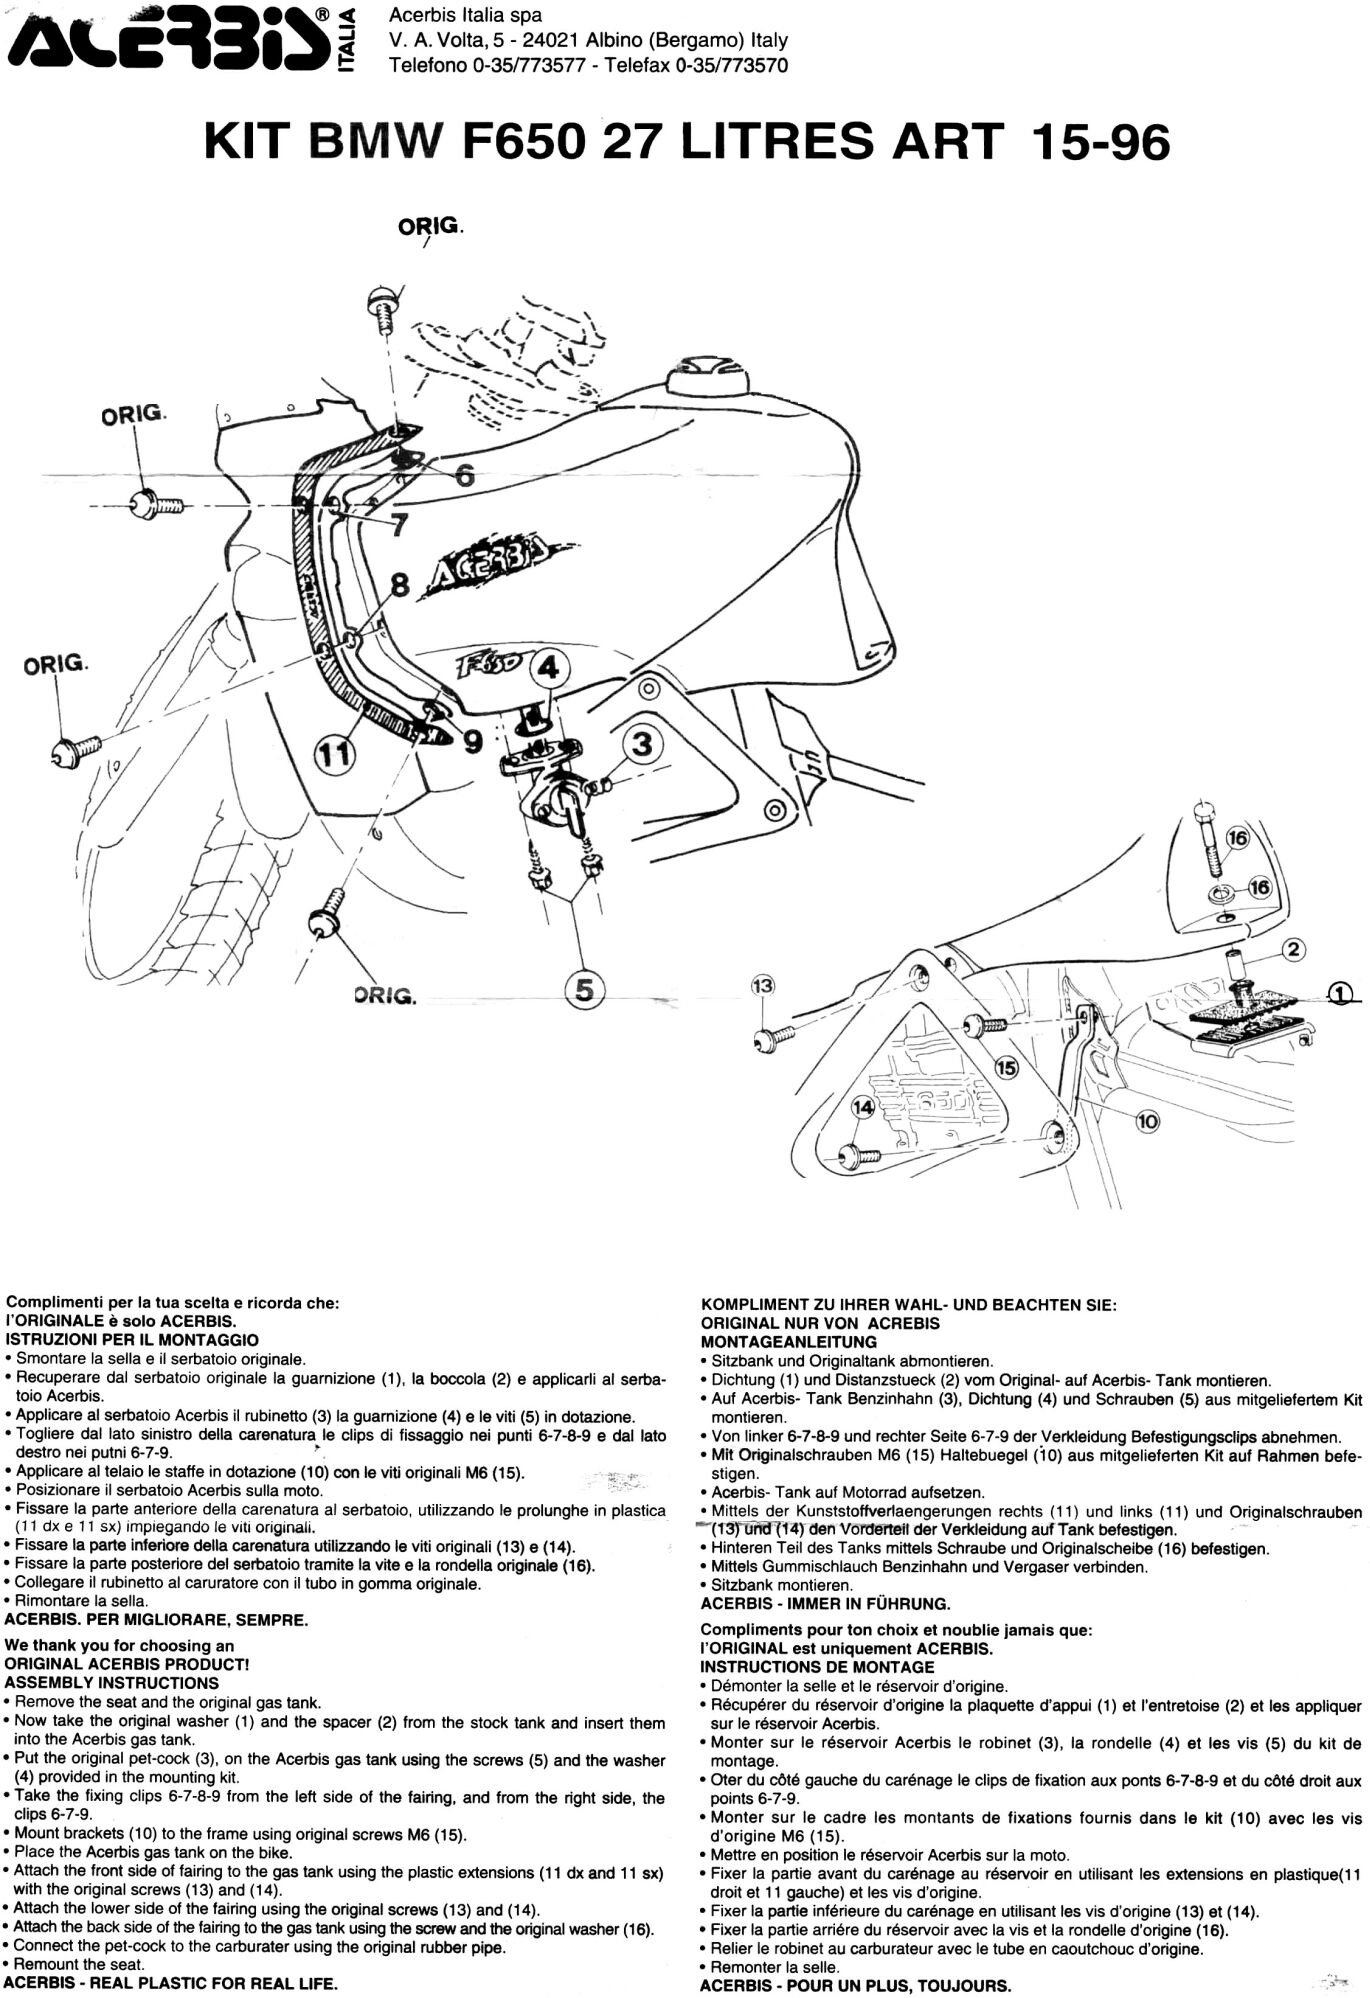 Grounding A Plastic Gas Tank Manual Guide